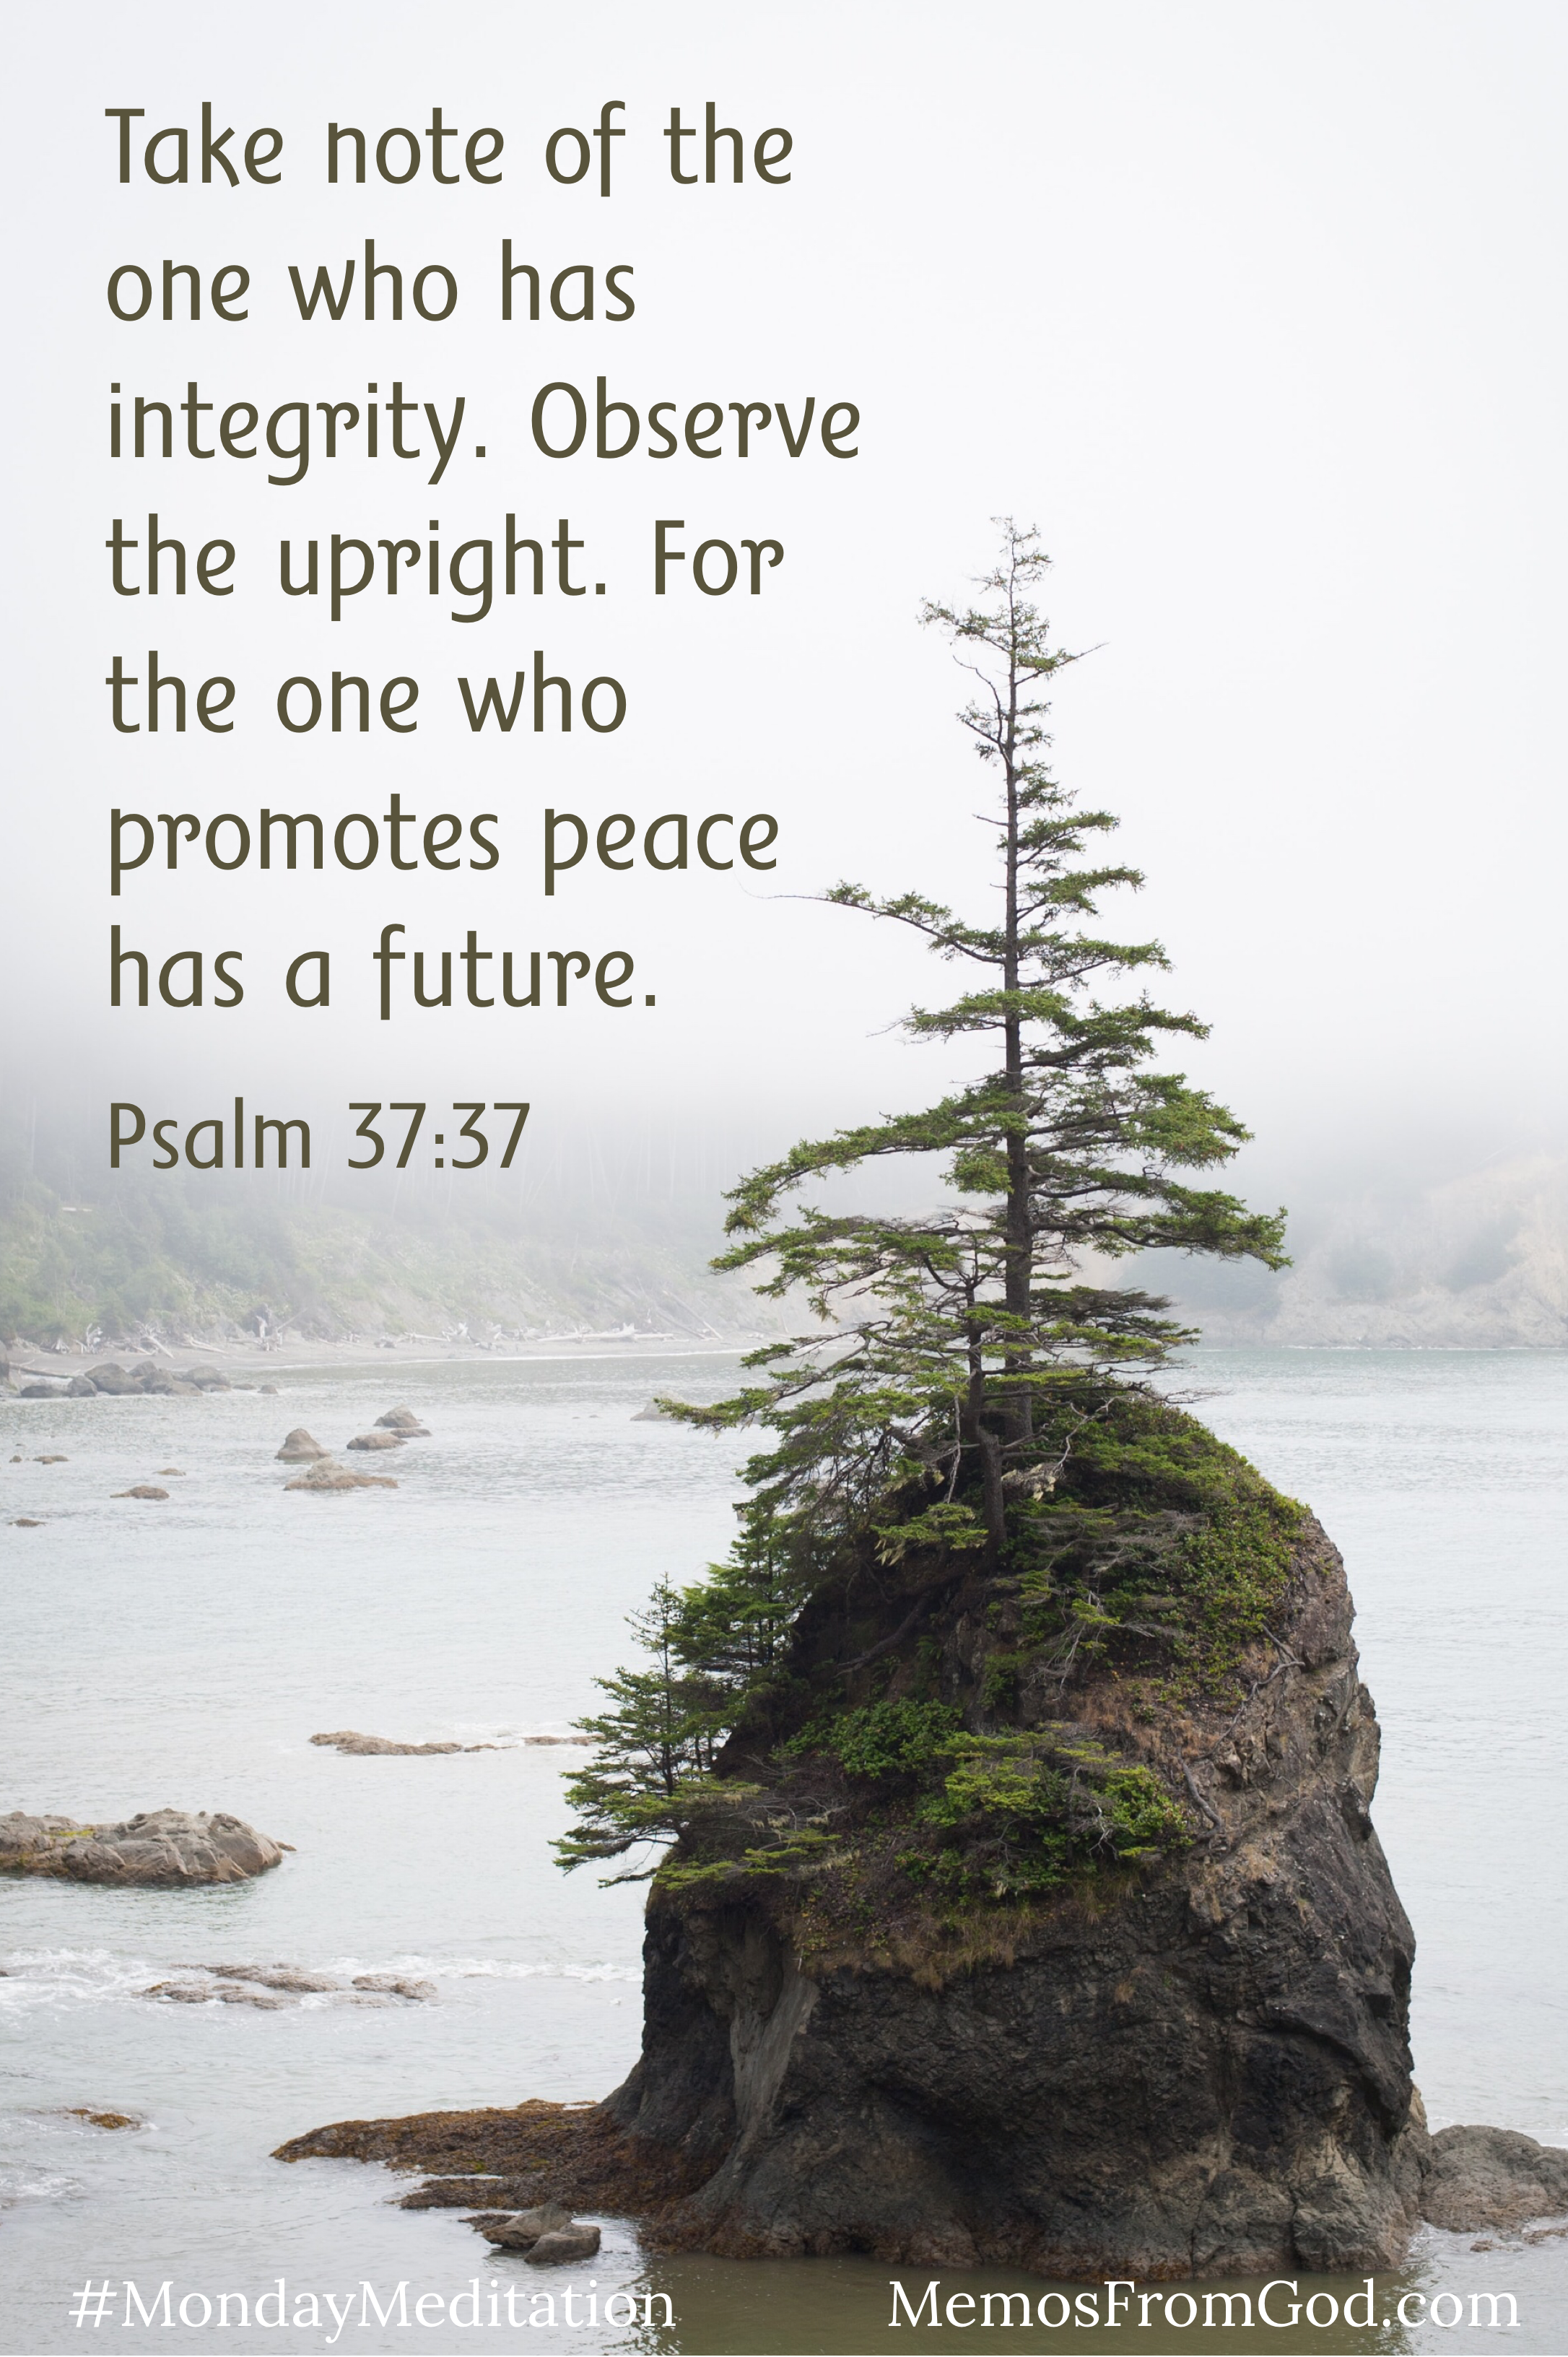 A lone evergreen growing out of a rock in the middle of a body water with a foggy background. Caption: take note of the one who has integrity. Observe the upright. For the one who promotes peace has a future. Psalm 37:37